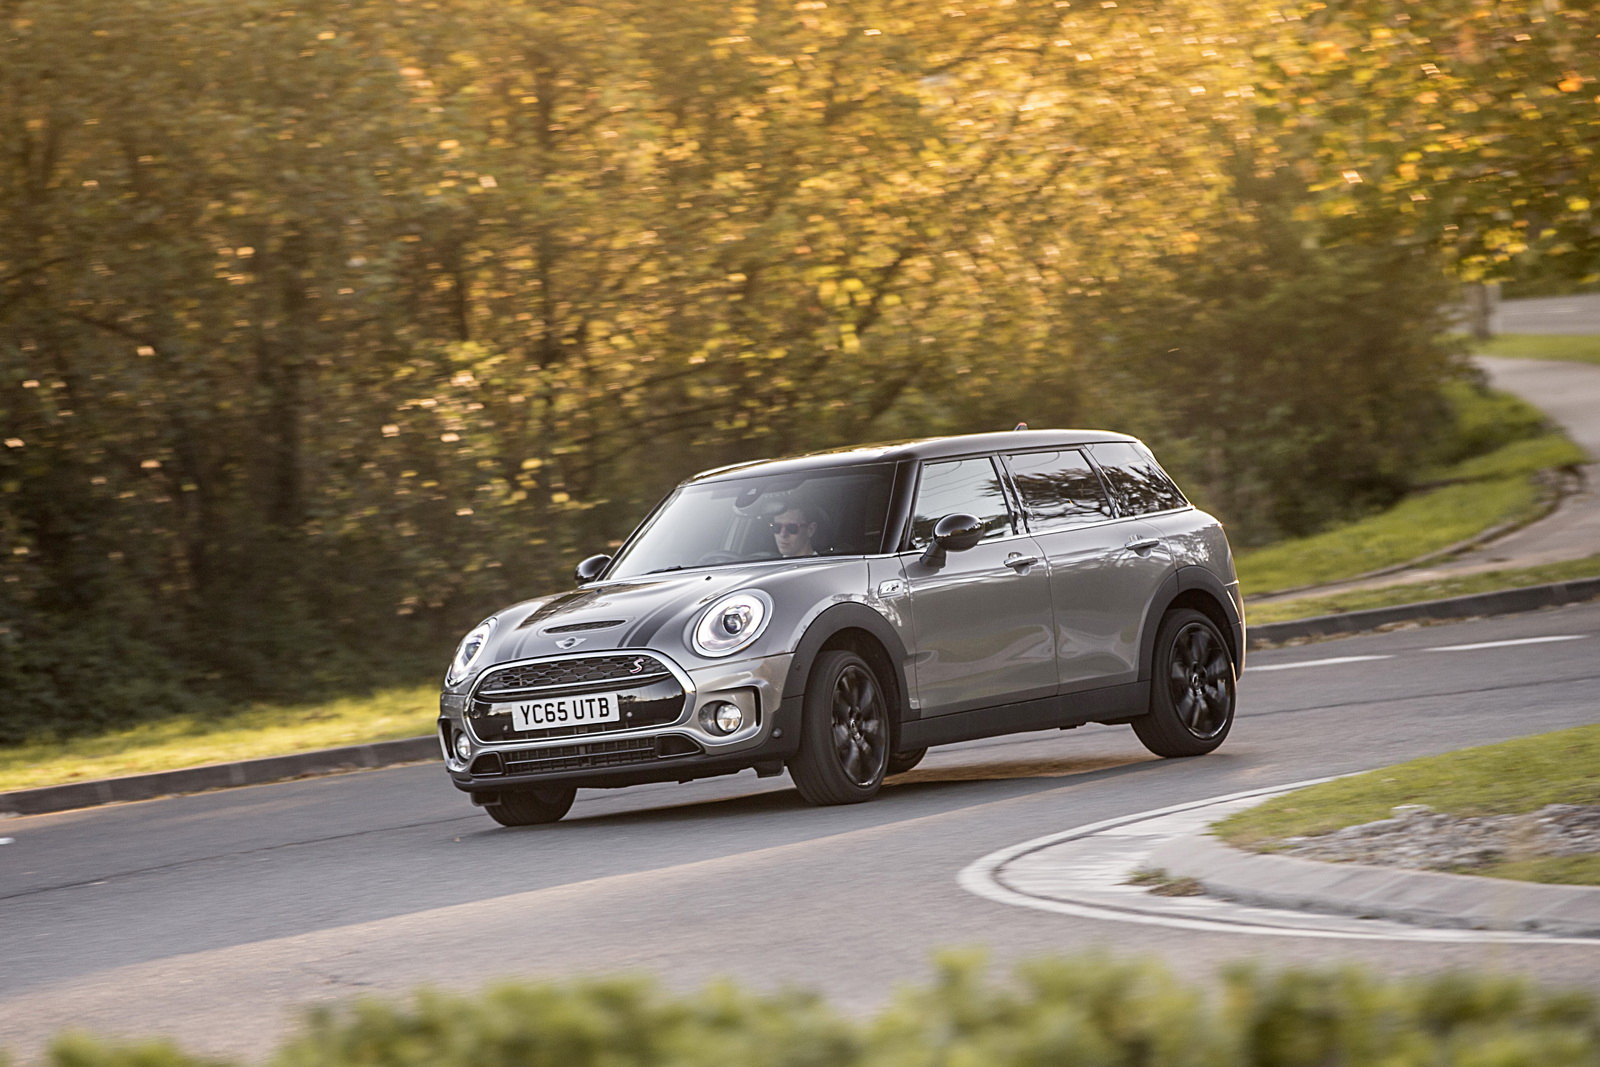 new mini clubman arrives in the uk priced from 19 995 121 pics carscoops. Black Bedroom Furniture Sets. Home Design Ideas